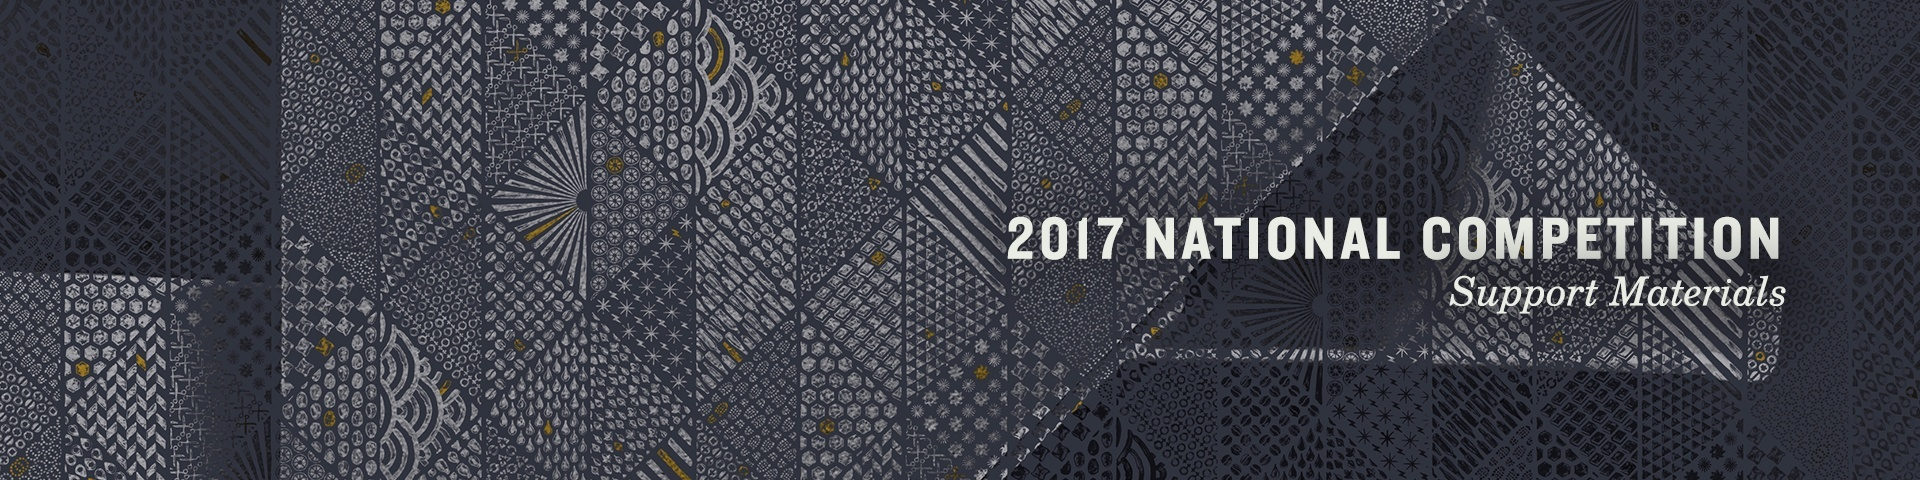 7. 2017 National Competition Support Material